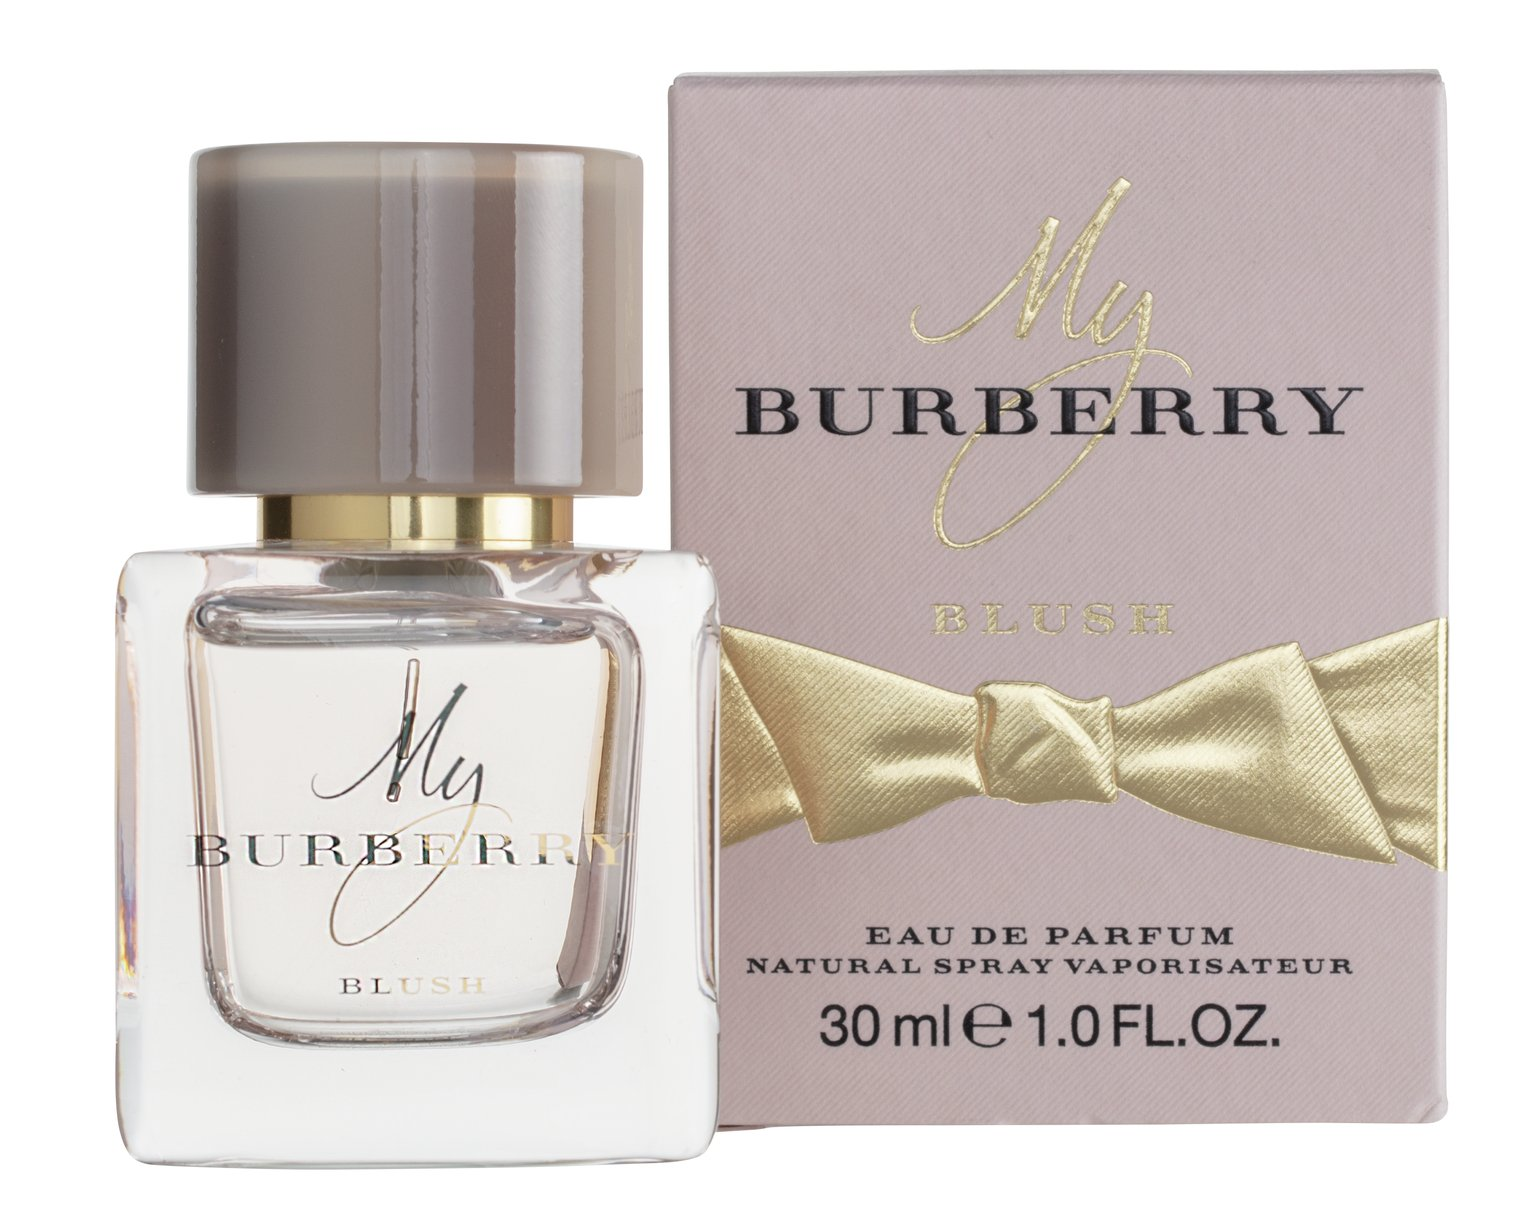 Burberry My Burberry Blush for Women Eau de Parfum - 30ml from Burberry